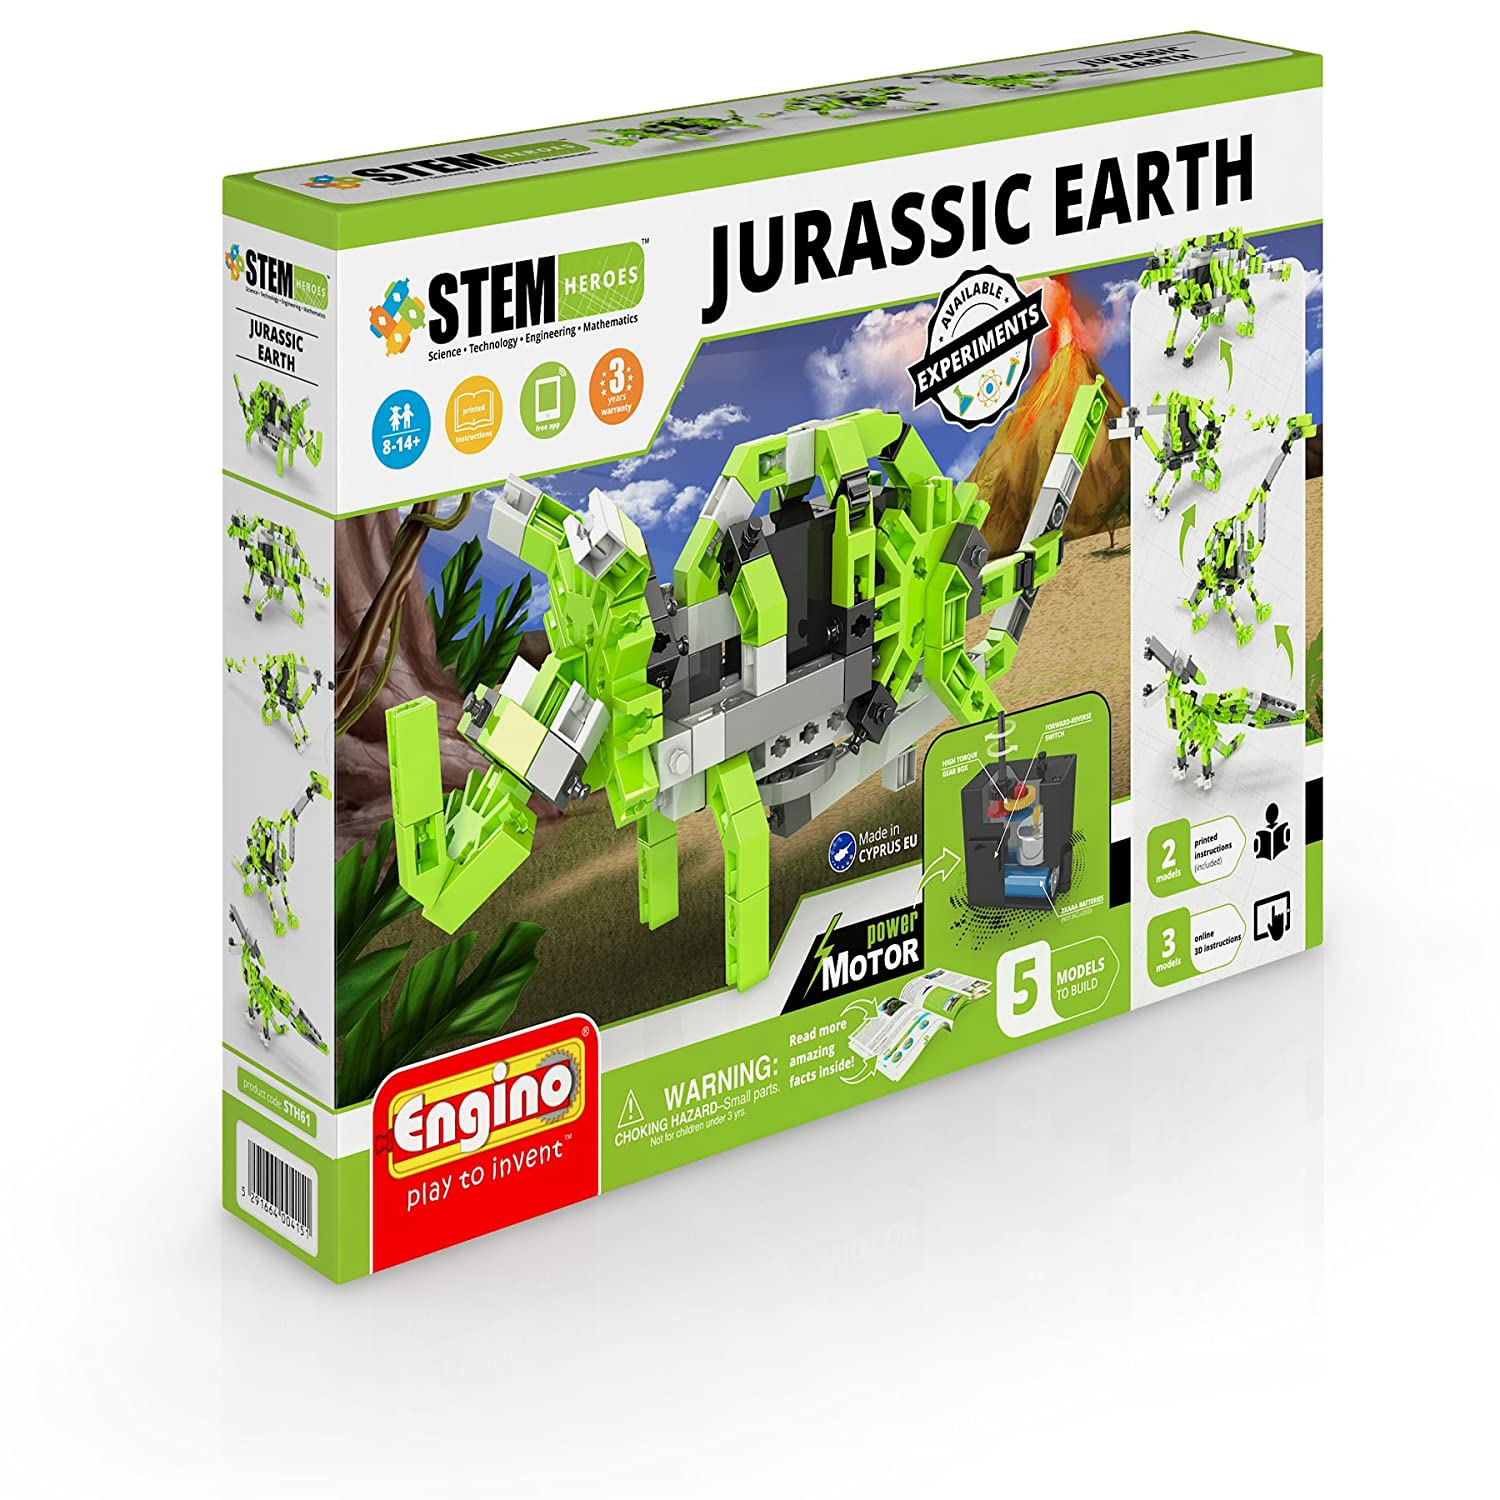 Engino STH61 Jurassic Earth Motorized Models Construction System Toy ENGSTEM42